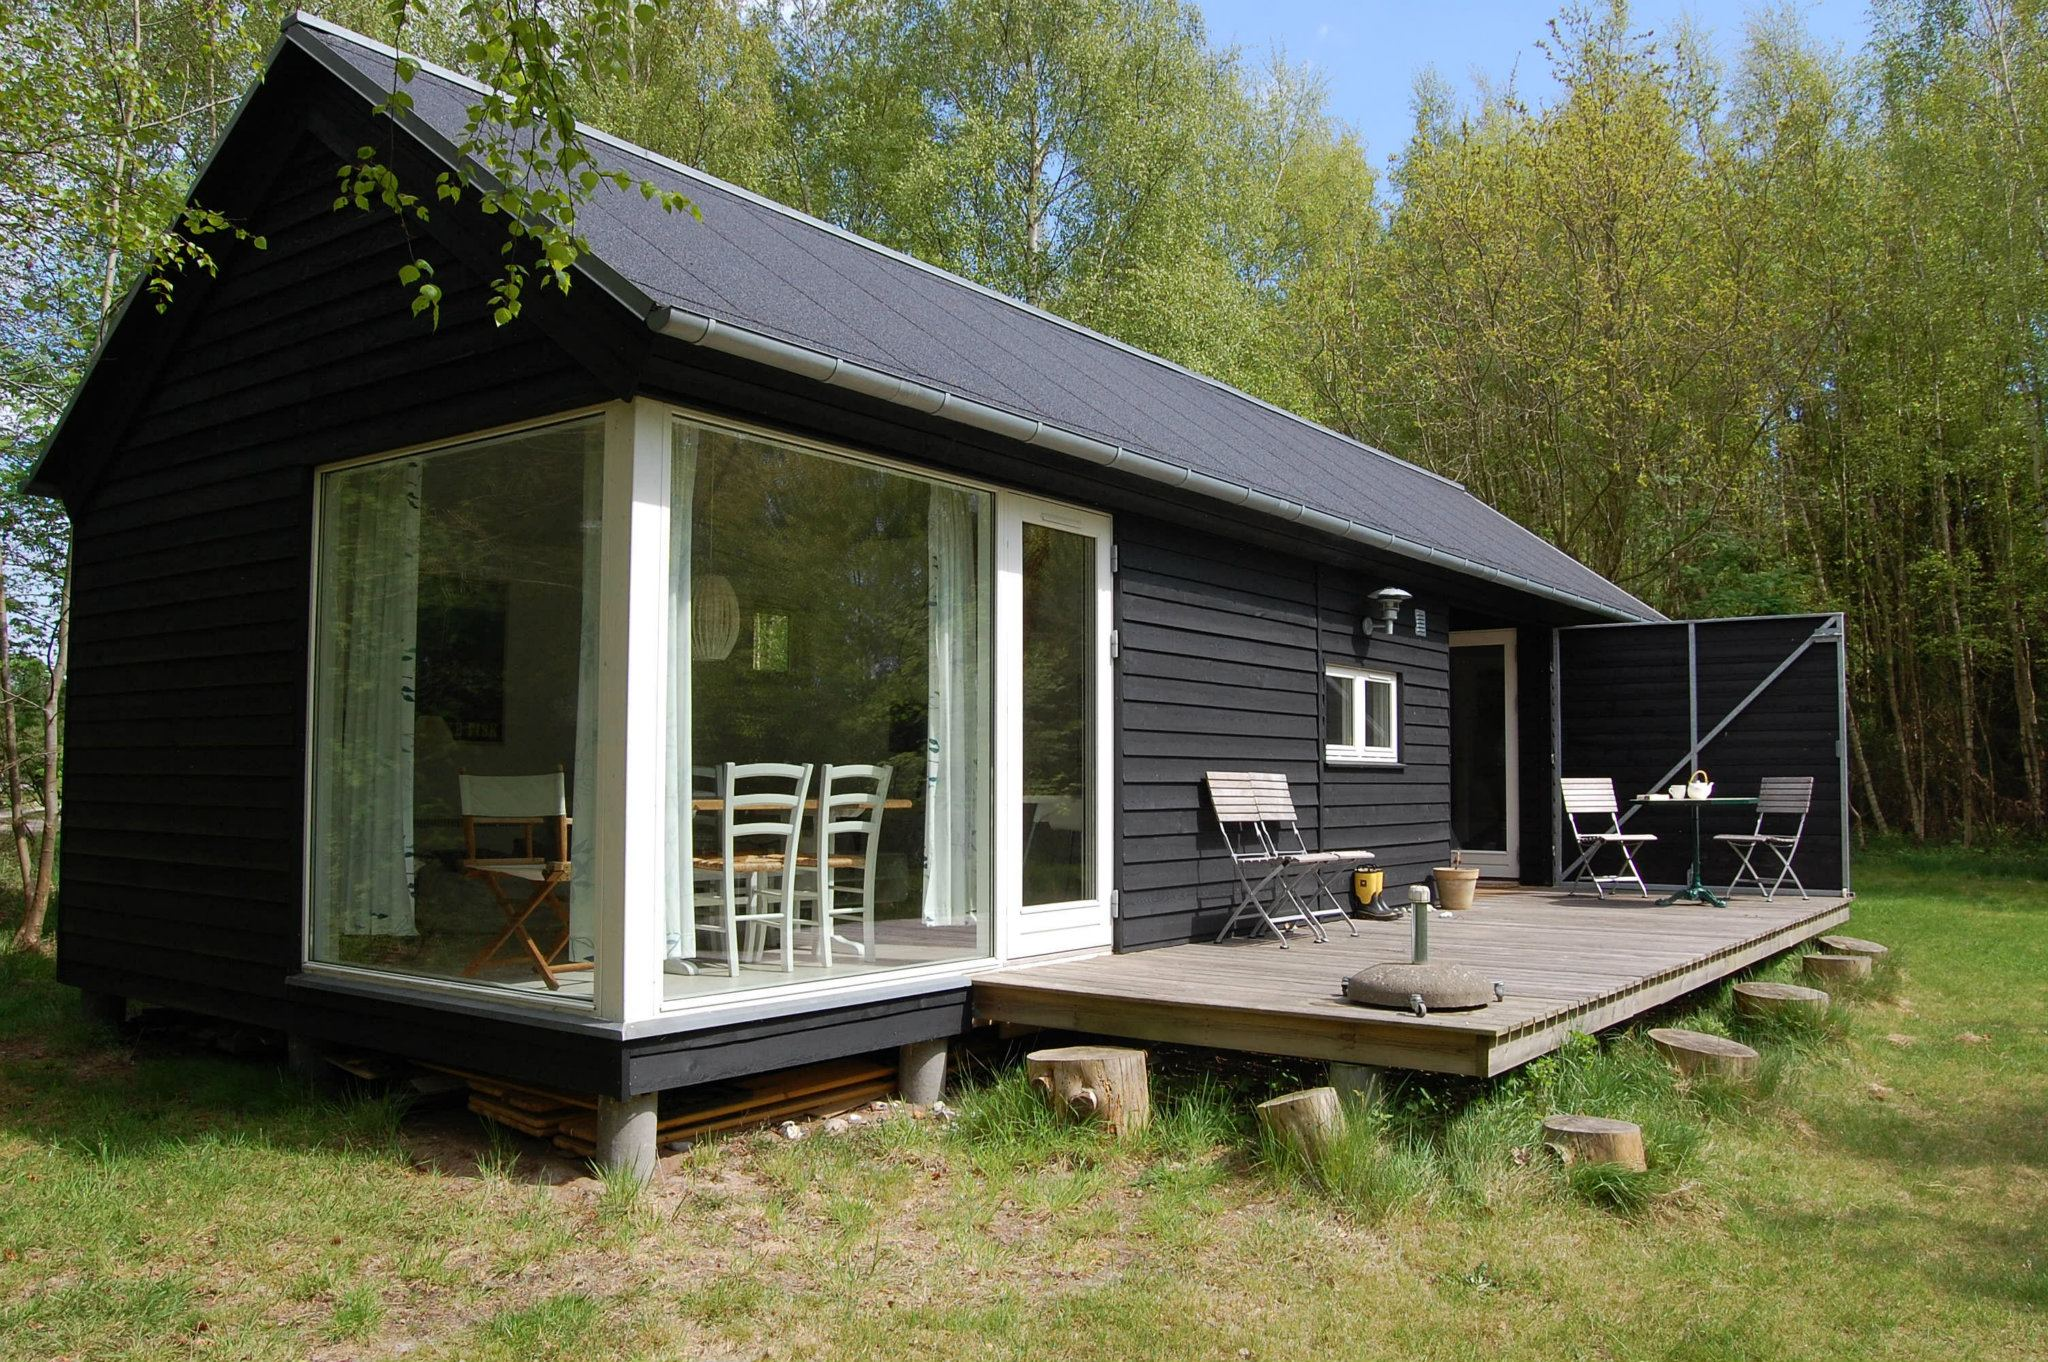 The Længehuset a modular vacation house from Denmark with 2 bedrooms in 592 sq ft & A modular vacation house from Denmark | Møn Huset | Small House Bliss